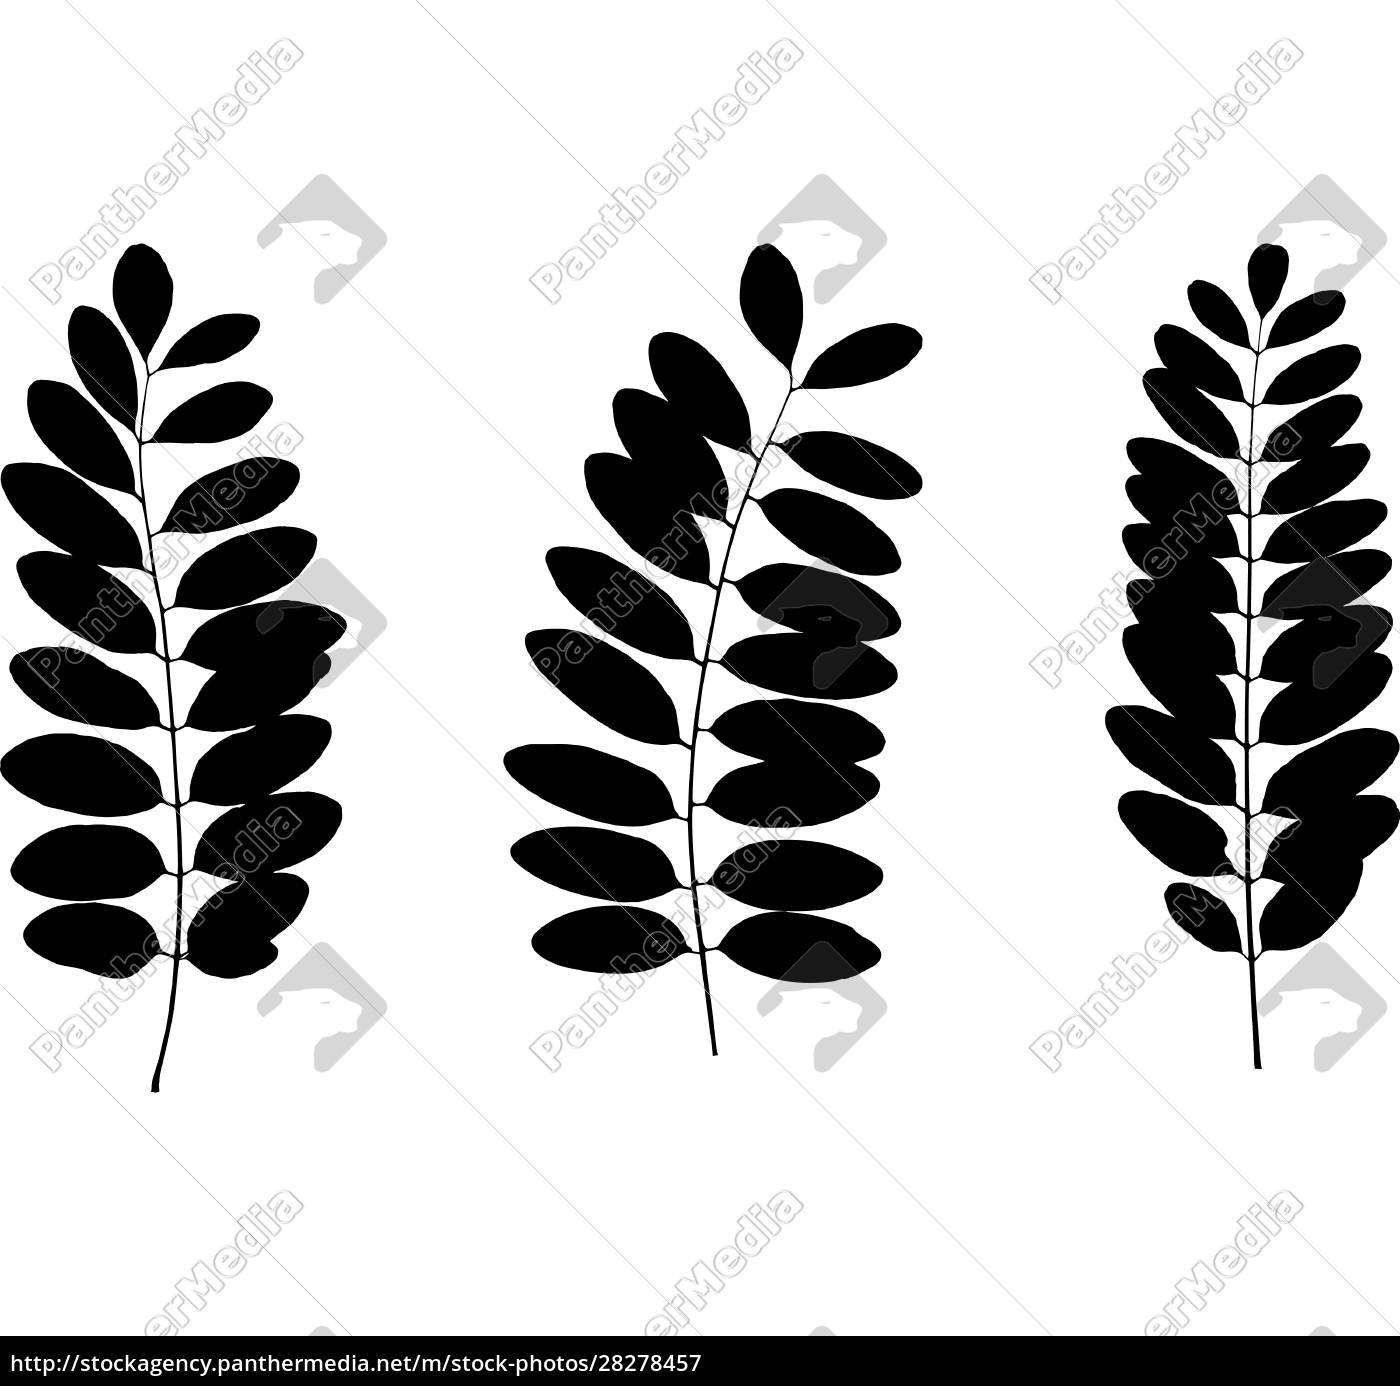 set, of, black, tree, leaf, silhouettes. - 28278457